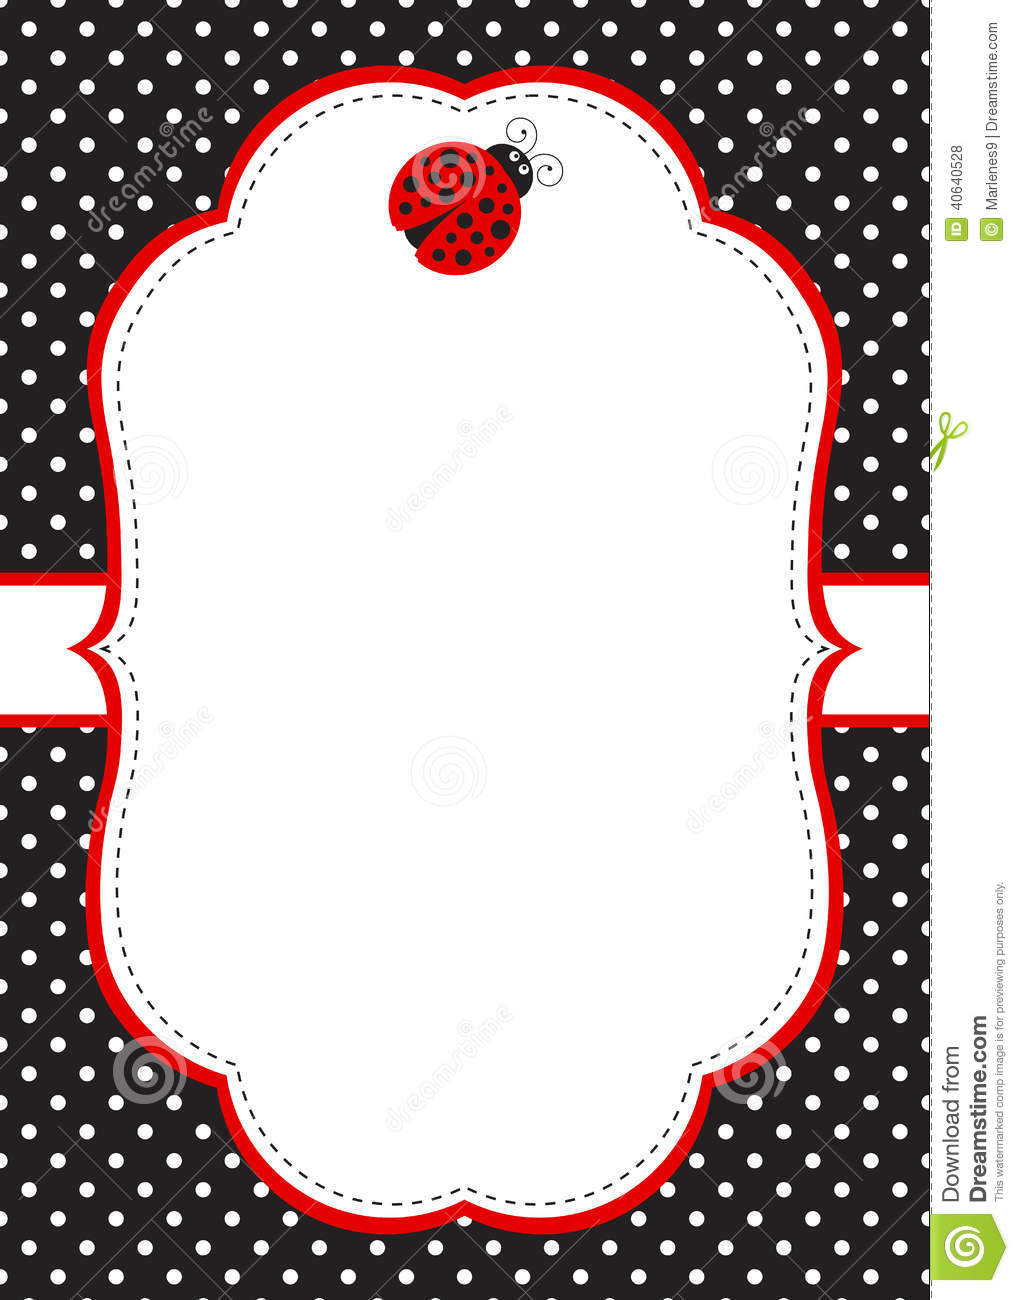 Ladybug Invite for great invitation sample